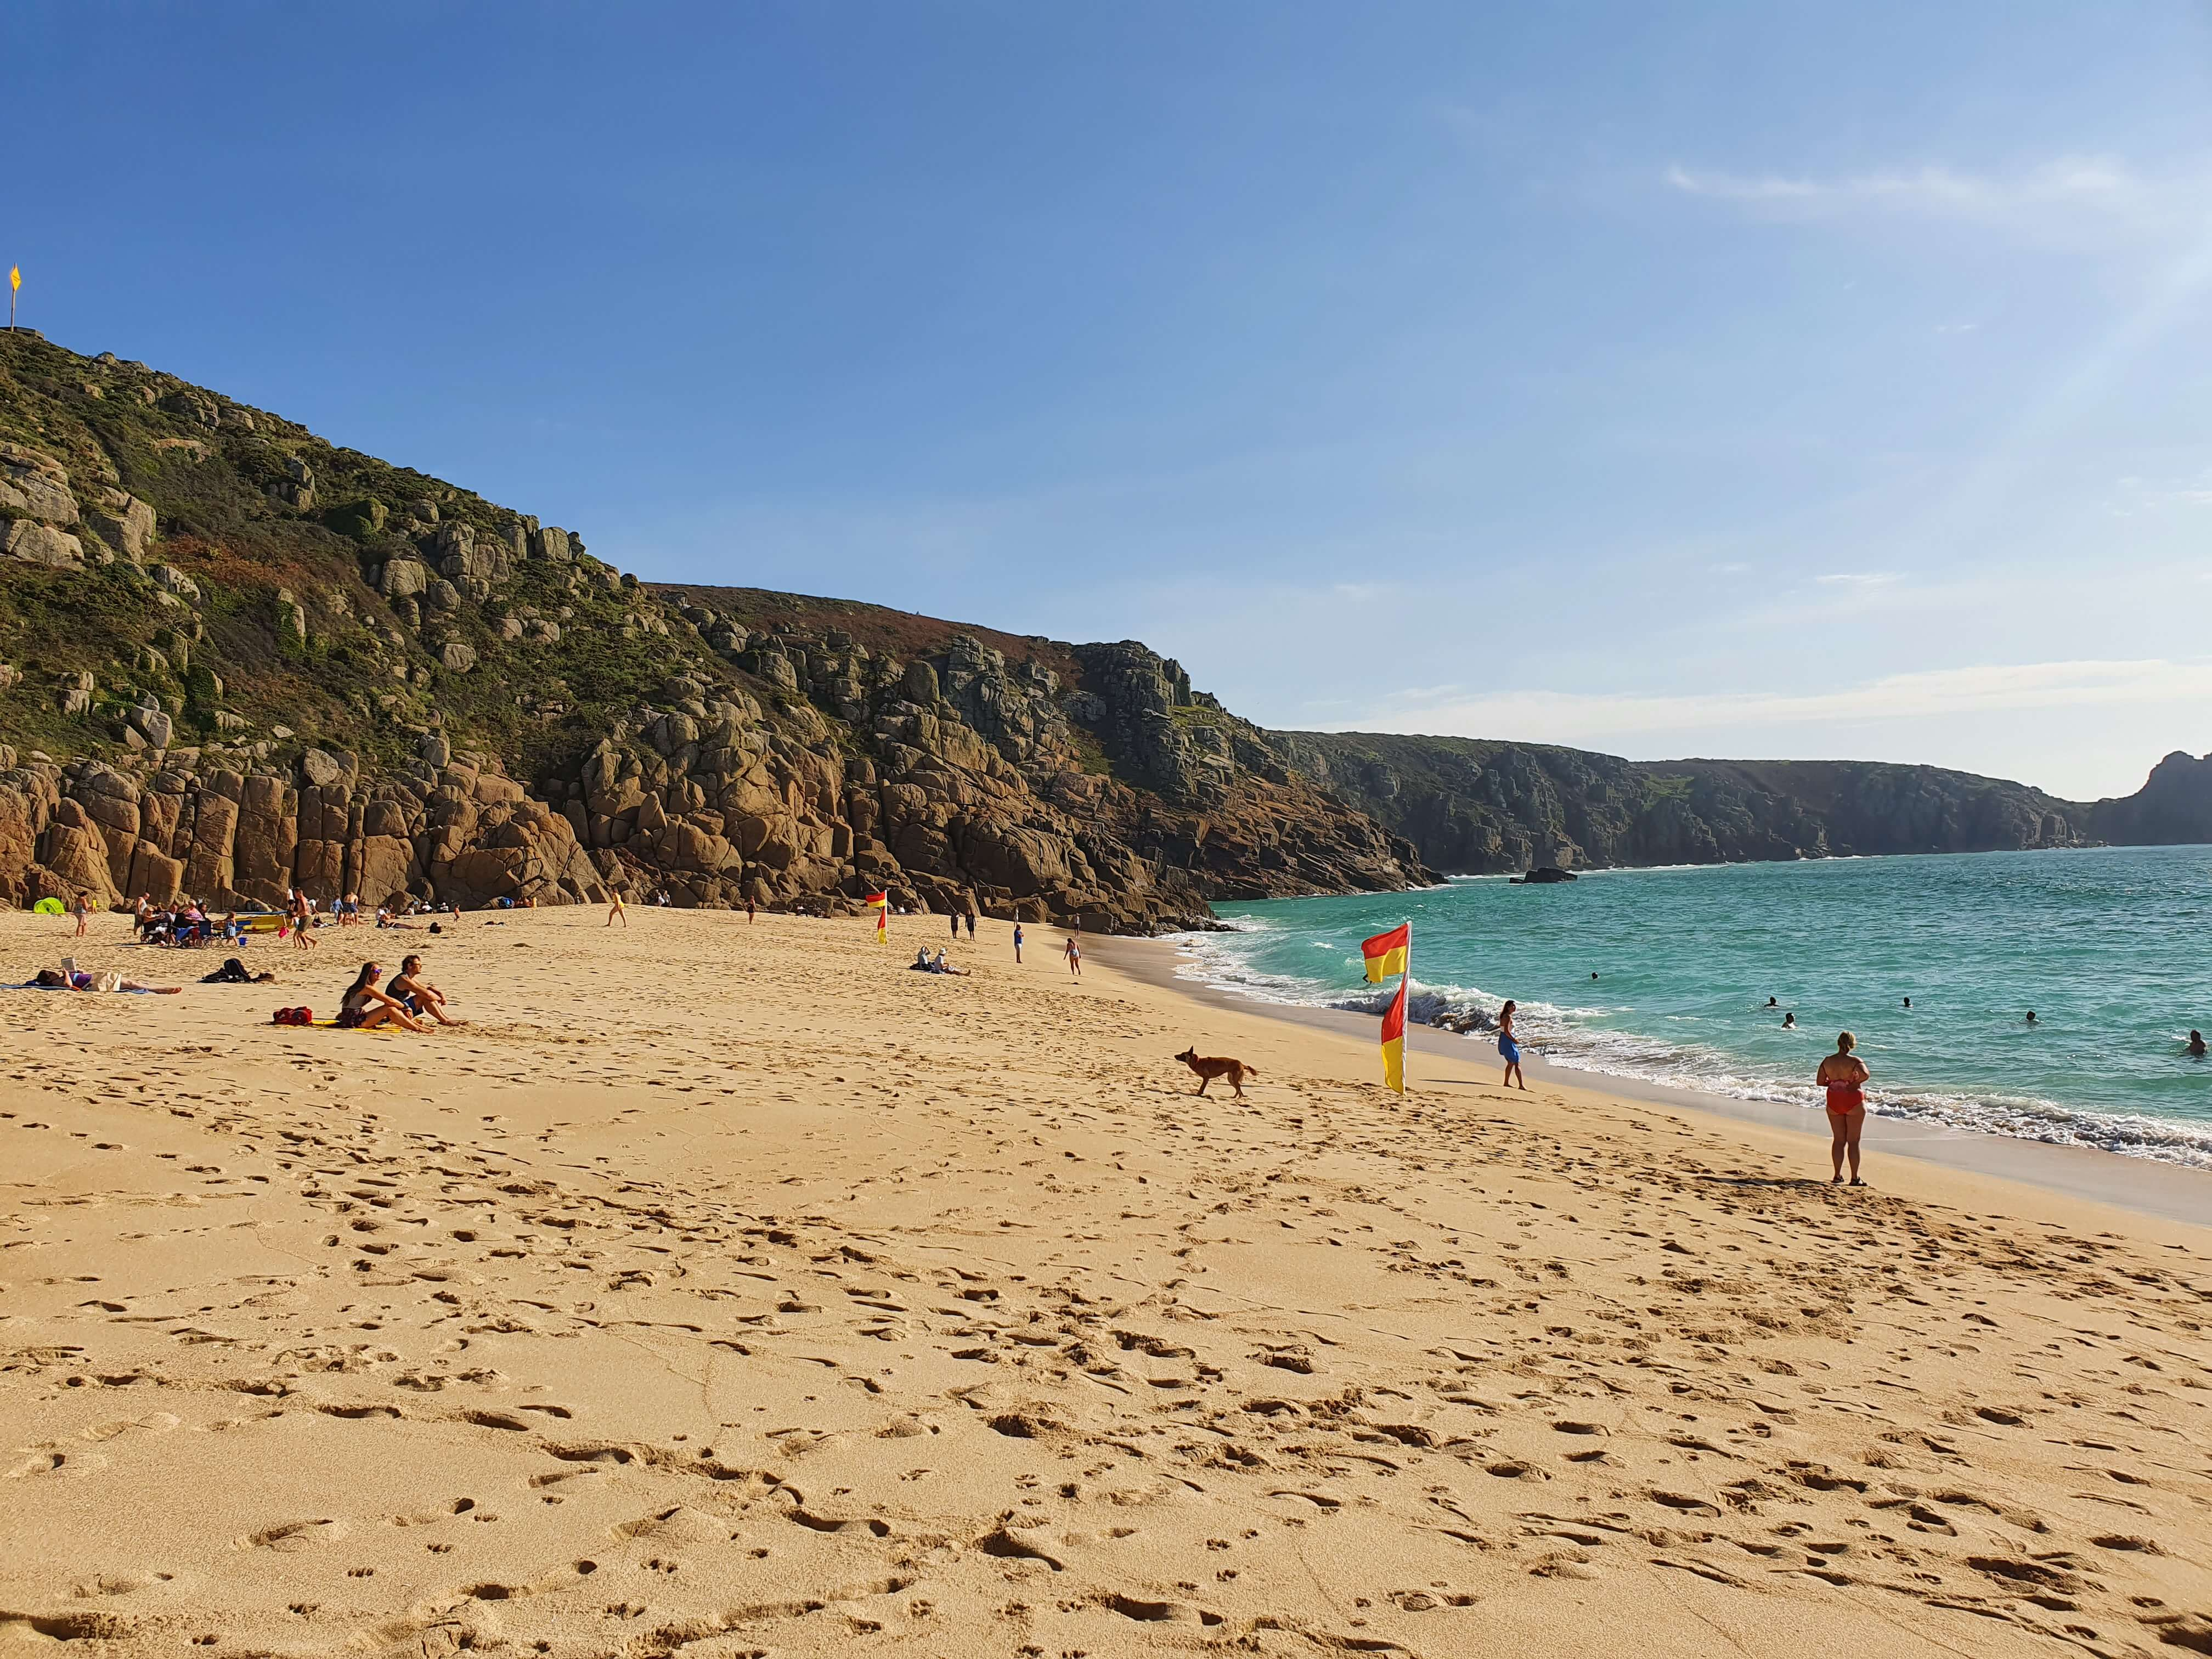 The beautiful Porthcurno Beach, with white sands, turquoise sea and rocky cliffs